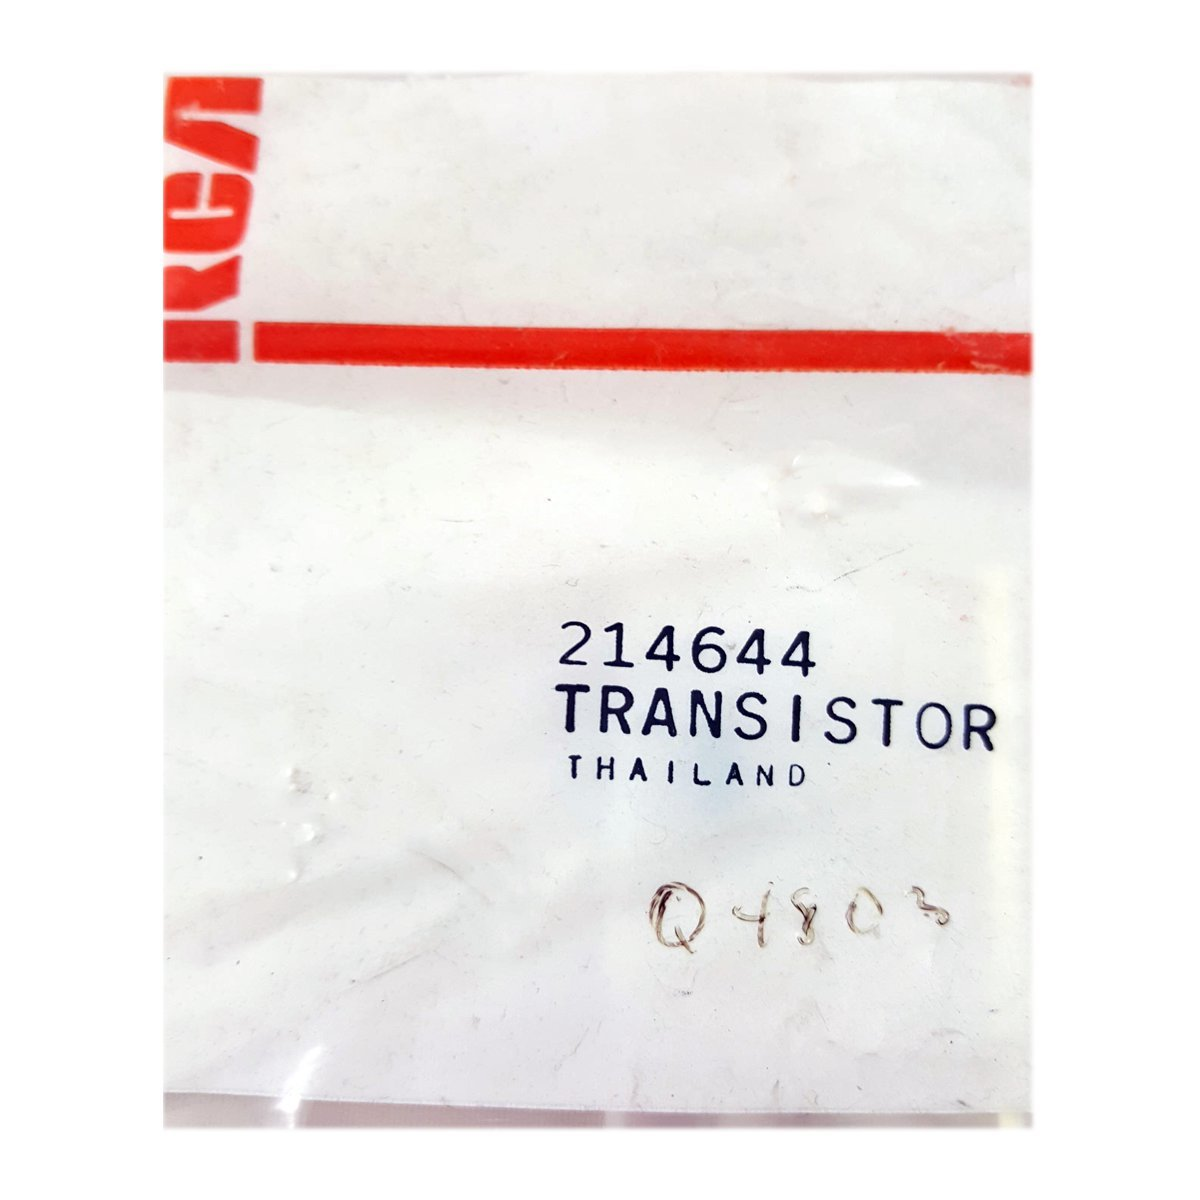 RCA VCR Replacement Transistor Part No. 214644